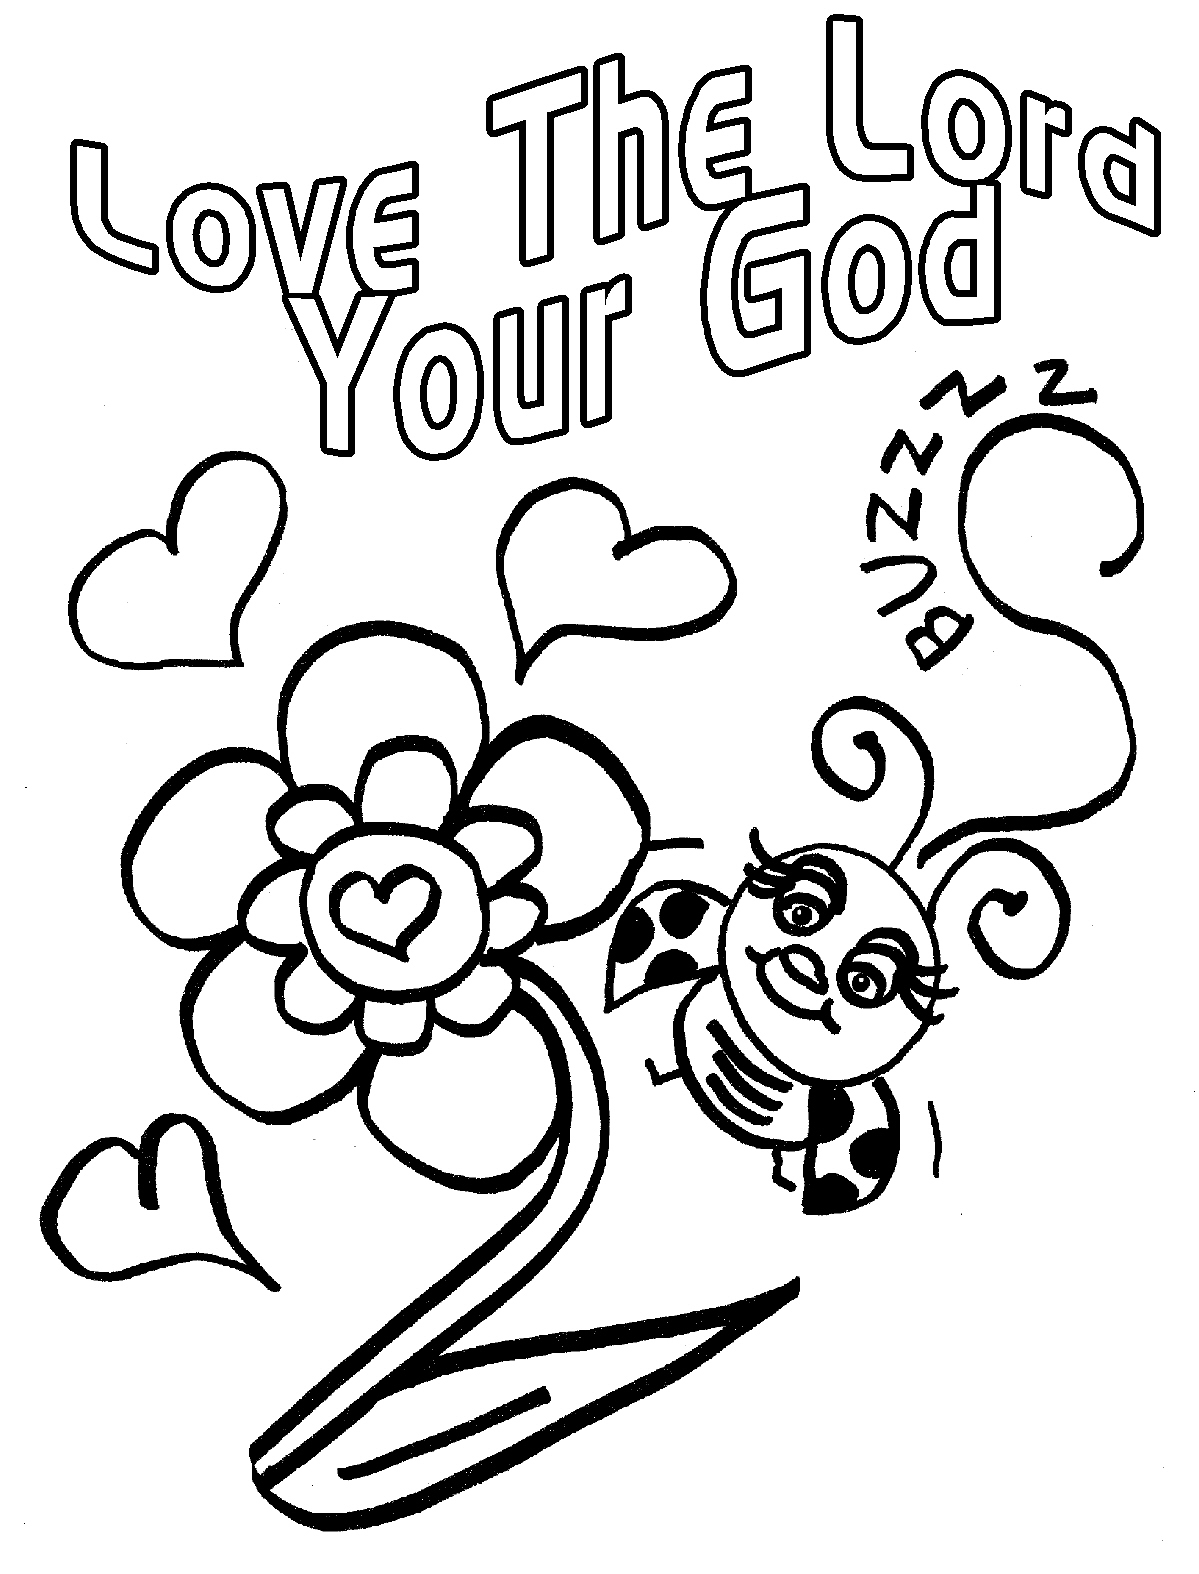 love god coloring pages - photo#2